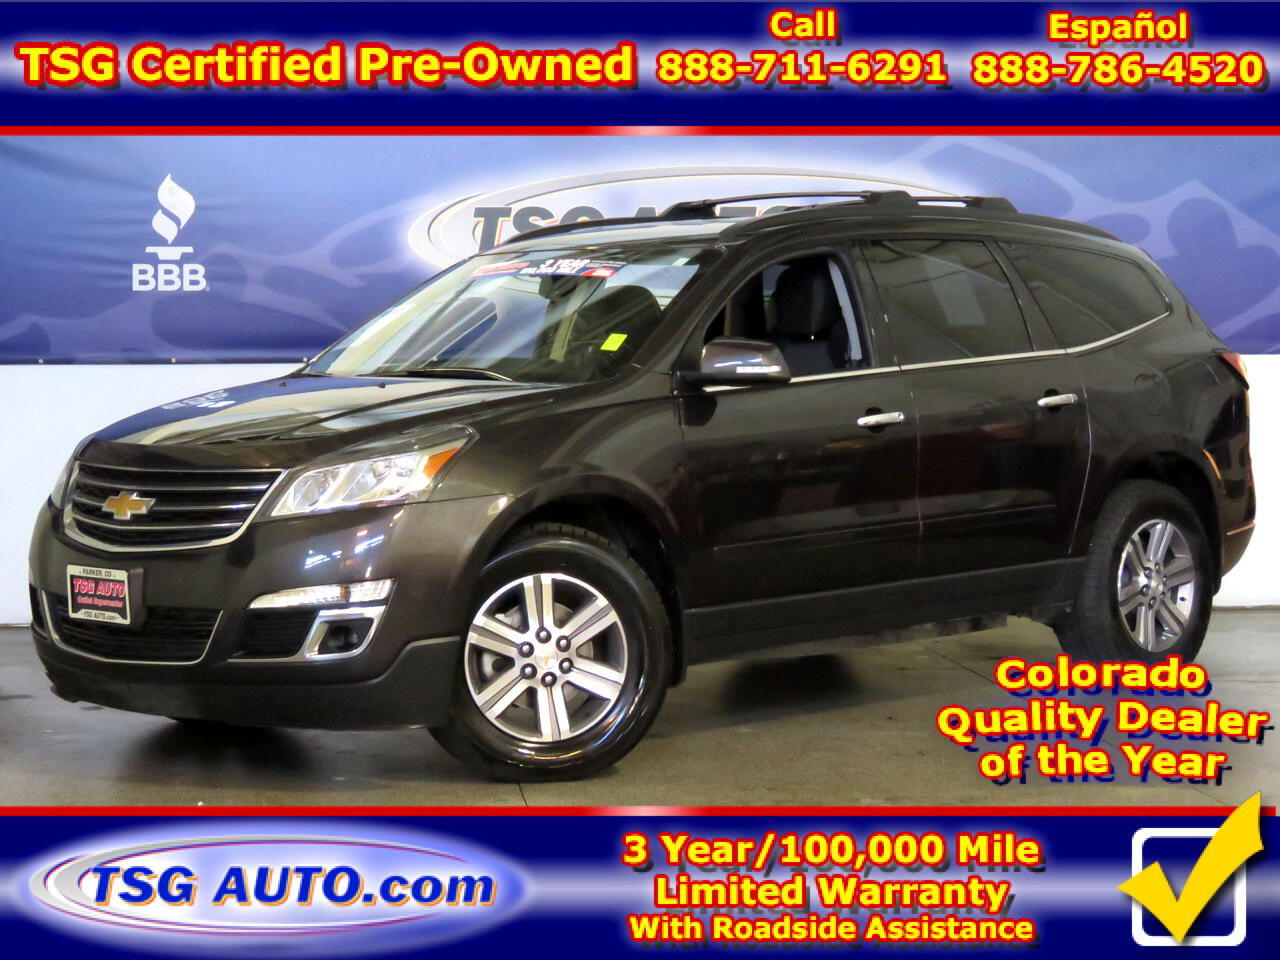 2017 Chevrolet Traverse LT 3.6L V6 4WD W/ThirdRow